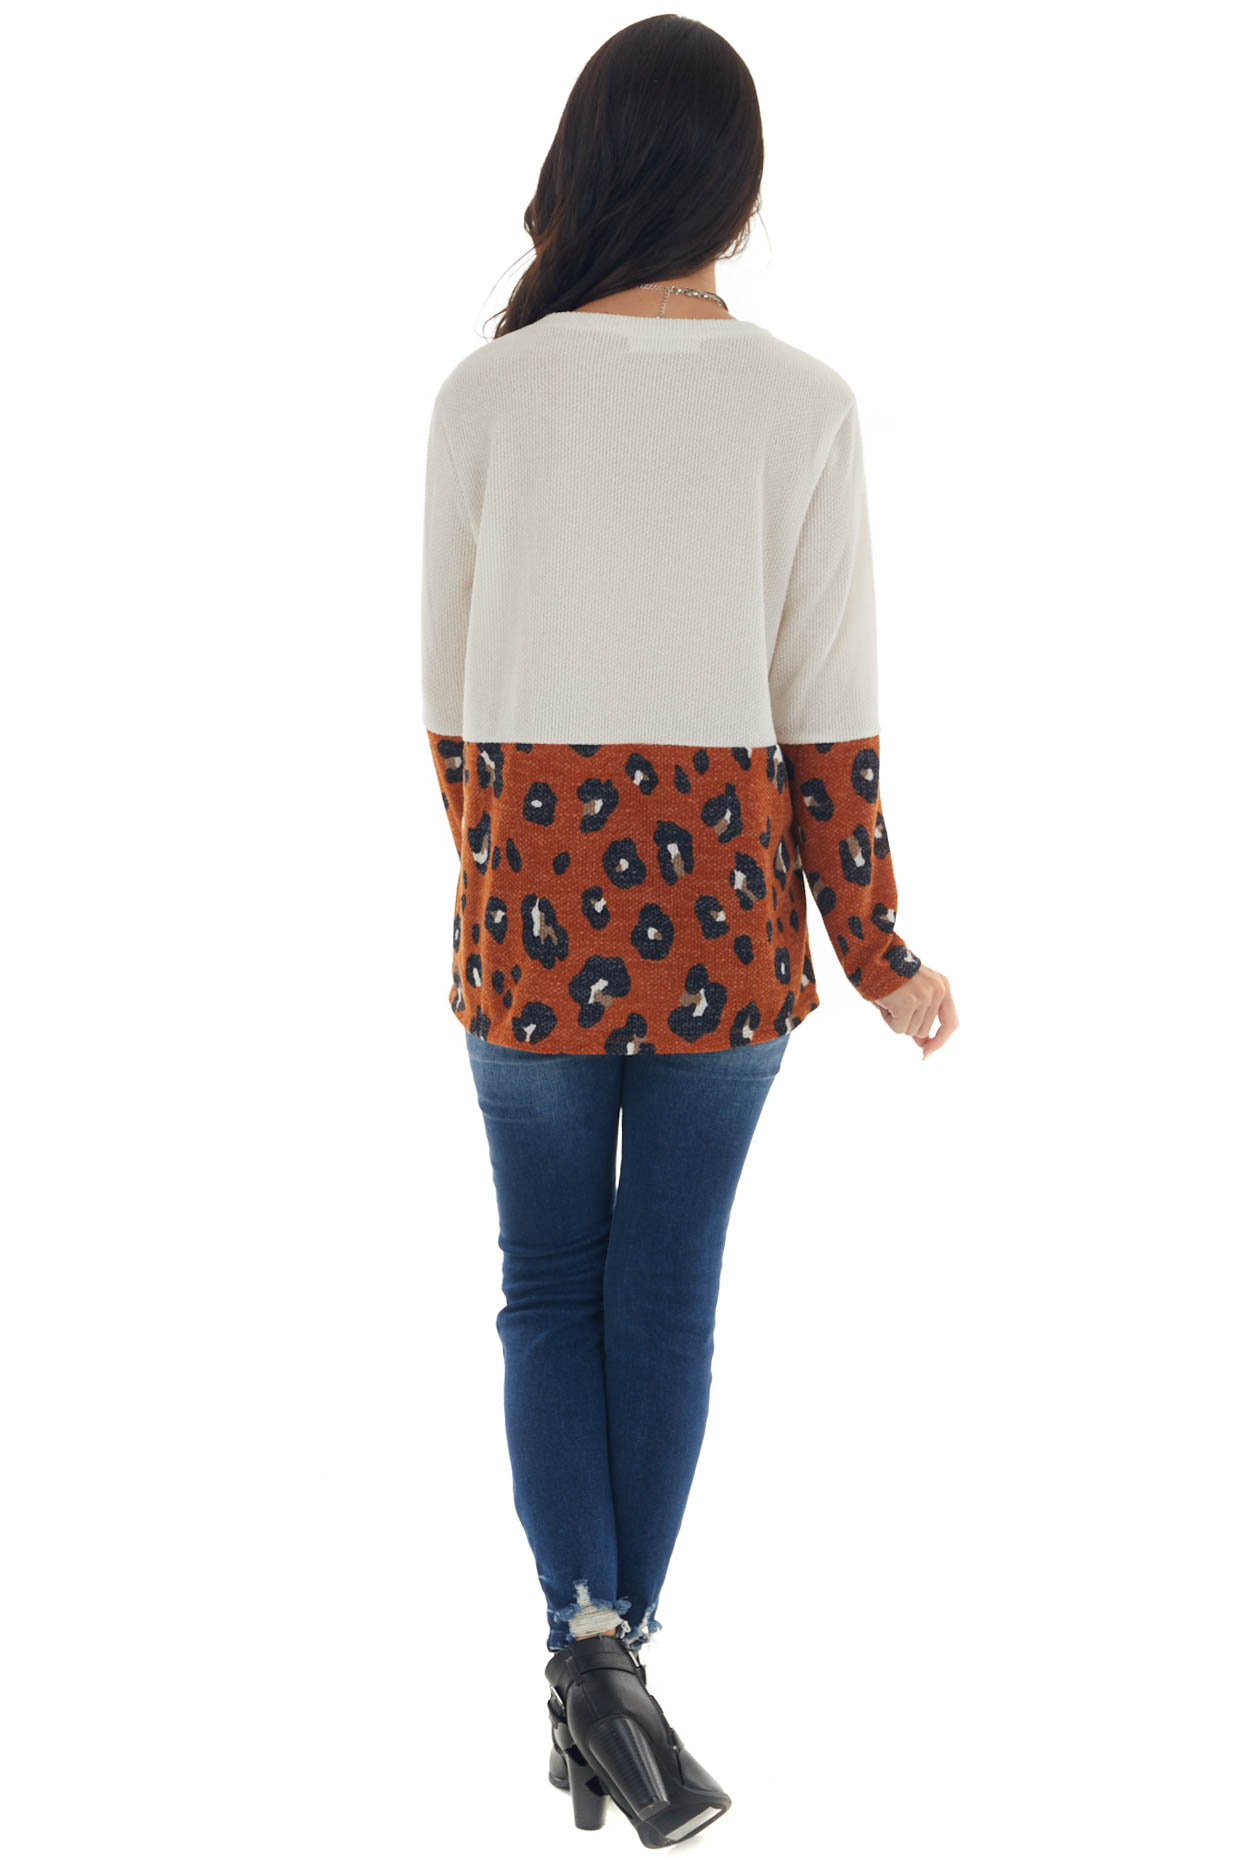 Cream and Tawny Leopard Print Long Sleeve Top